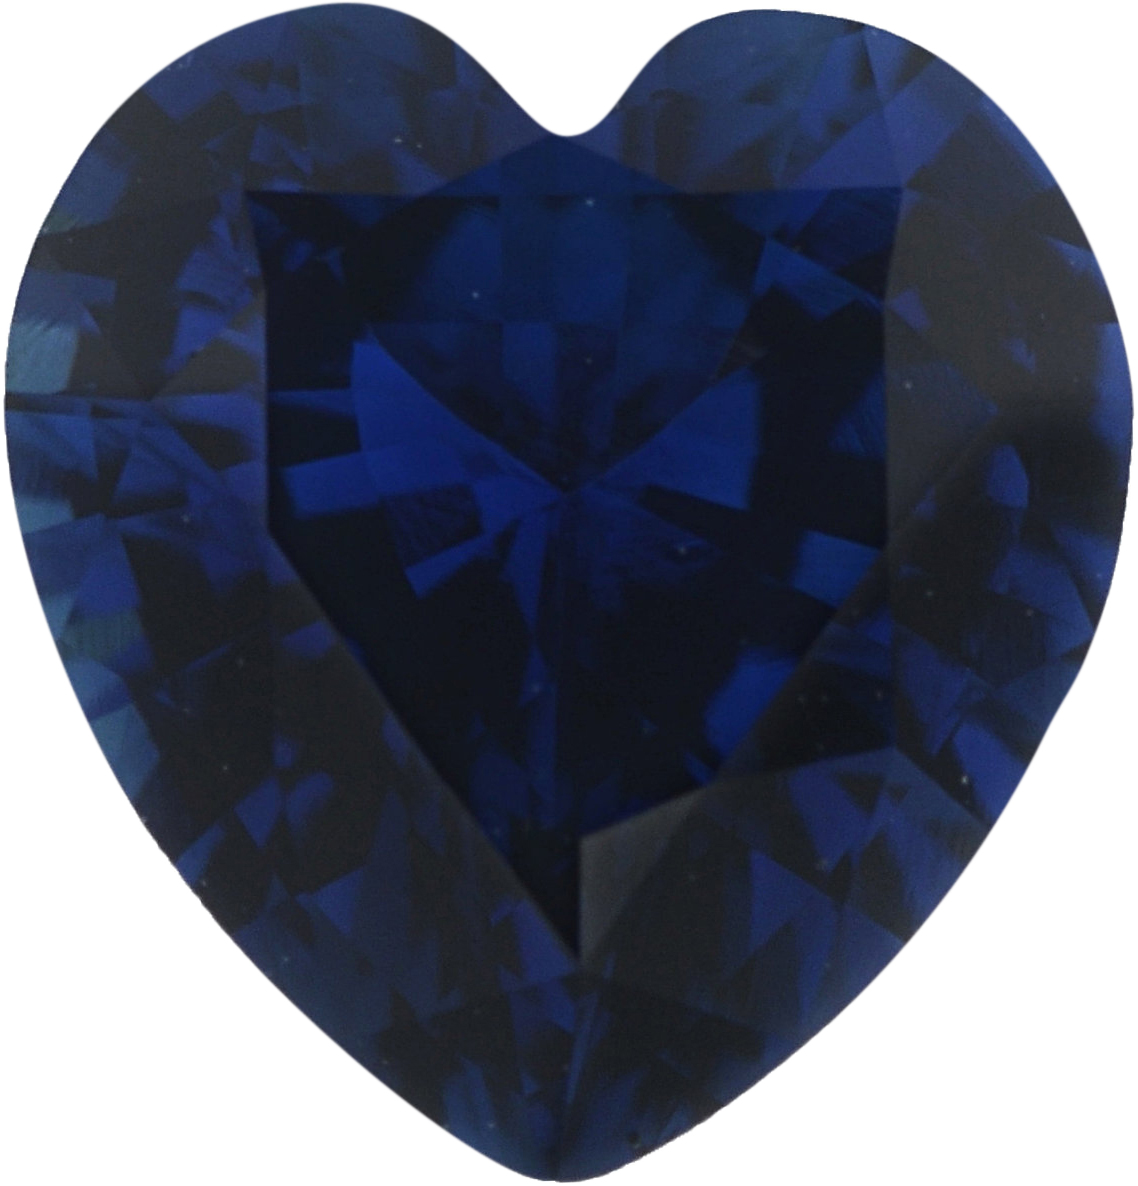 0.84 carats Blue Loose Sapphire Gemstone in Heart Cut, 6.13 x 5.83 mm